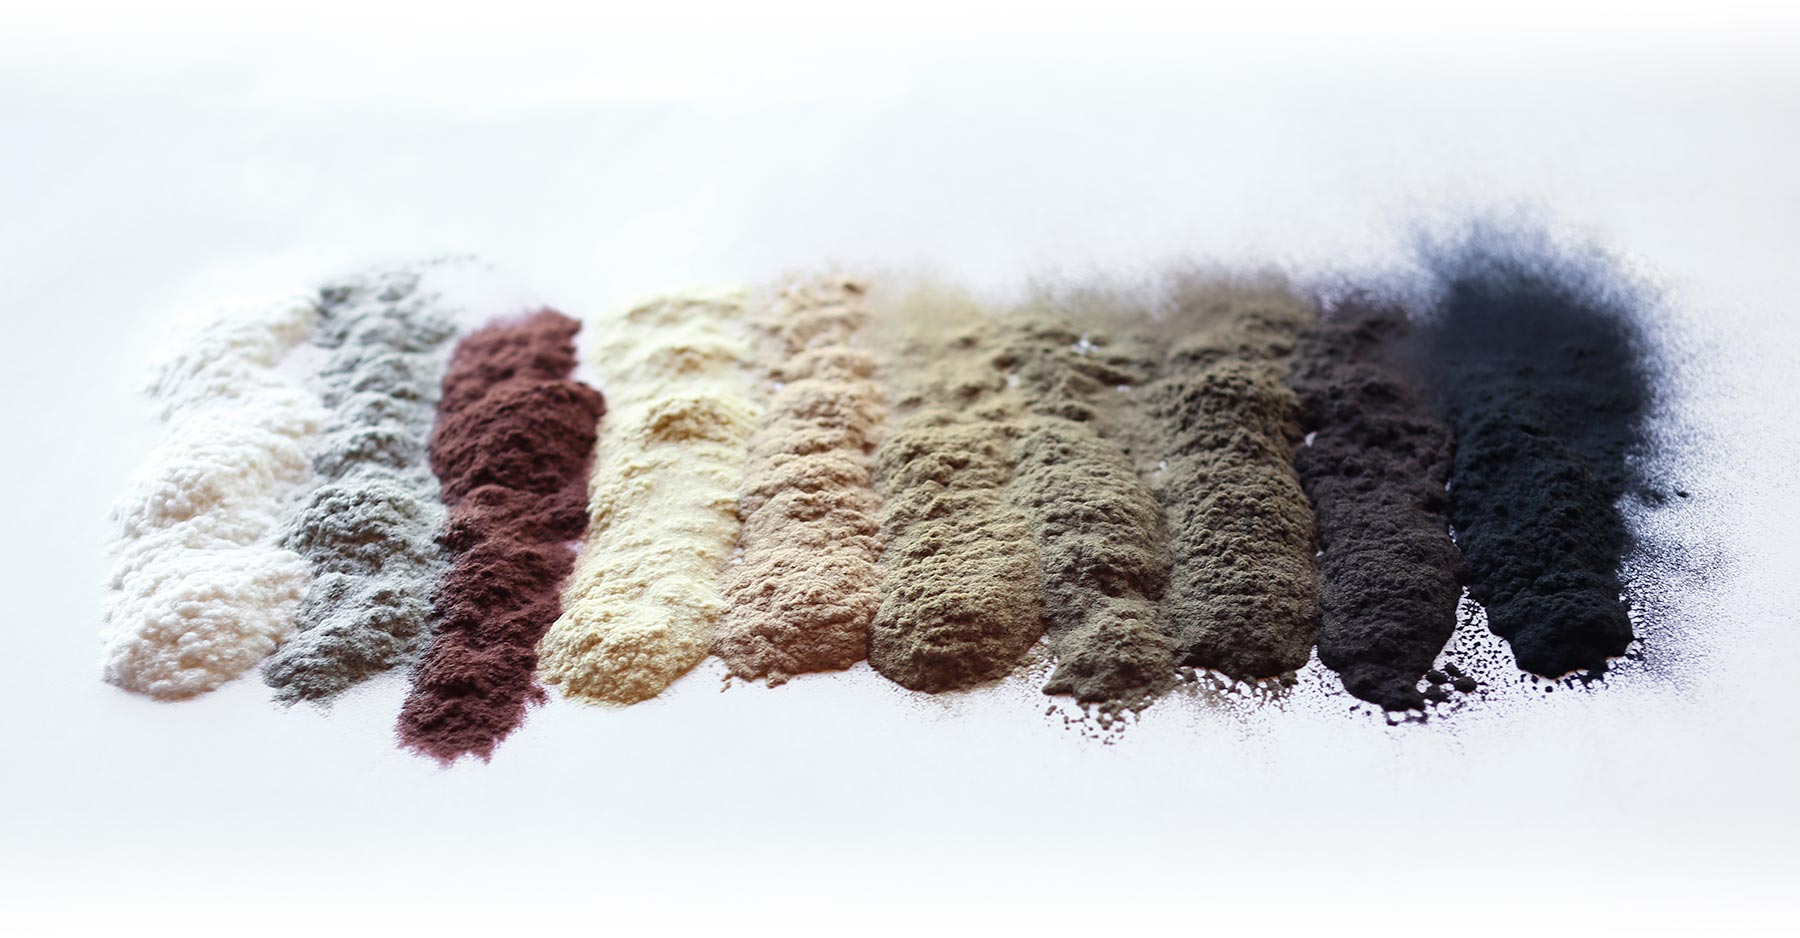 Revive comes in 10 different shades to match all hair colors